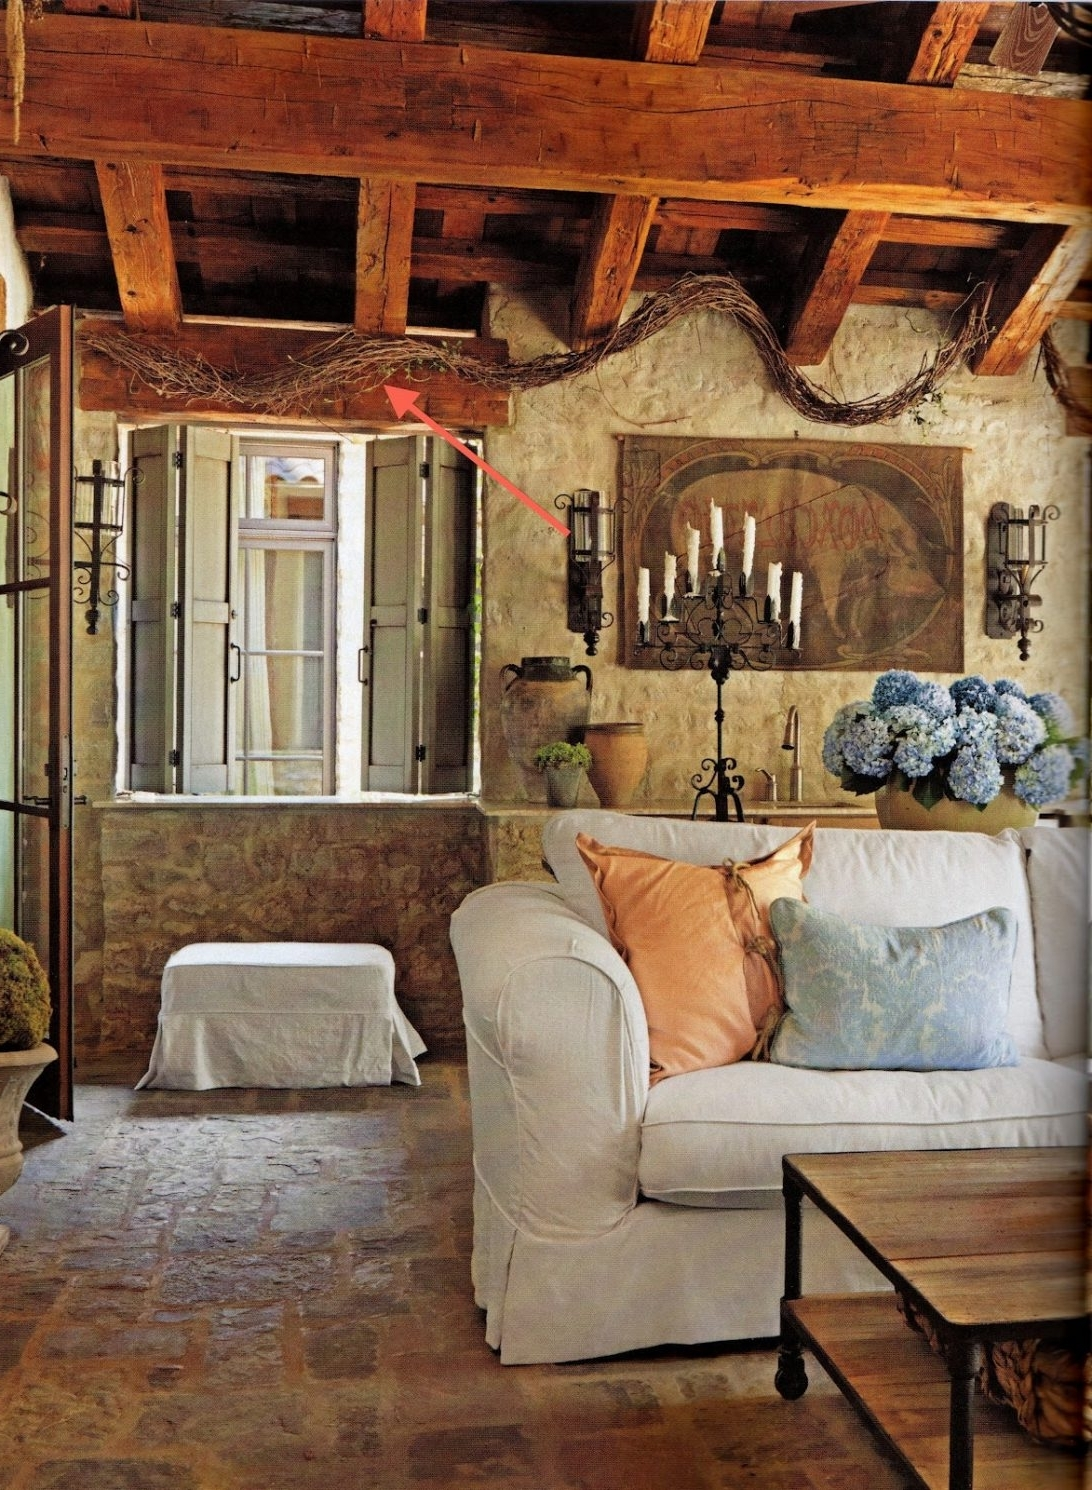 Tuscan Style Floor Lamps Interior Cool Living Room Decoration Ideas Within Current Tuscan Table Lamps For Living Room (View 14 of 15)